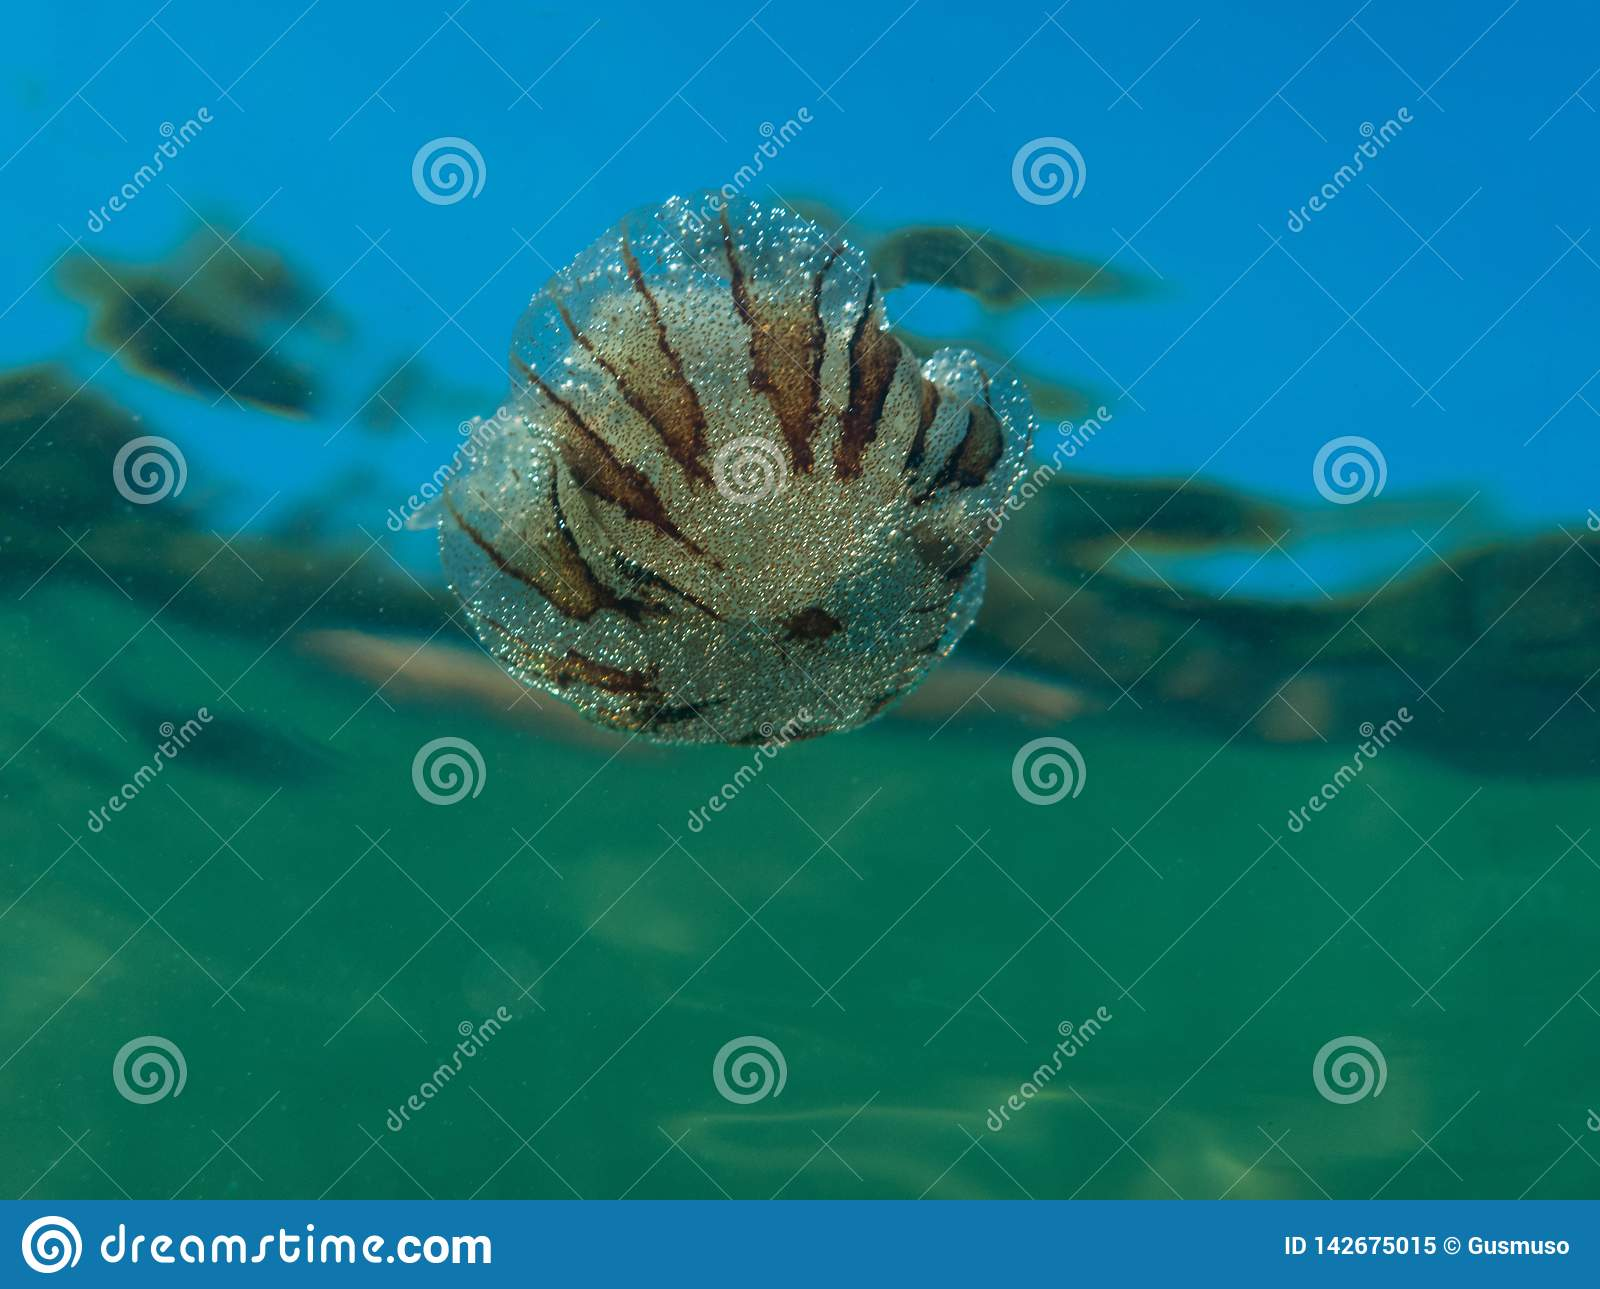 A Small Jellyfish From The Family Of Compass Jellyfish ...